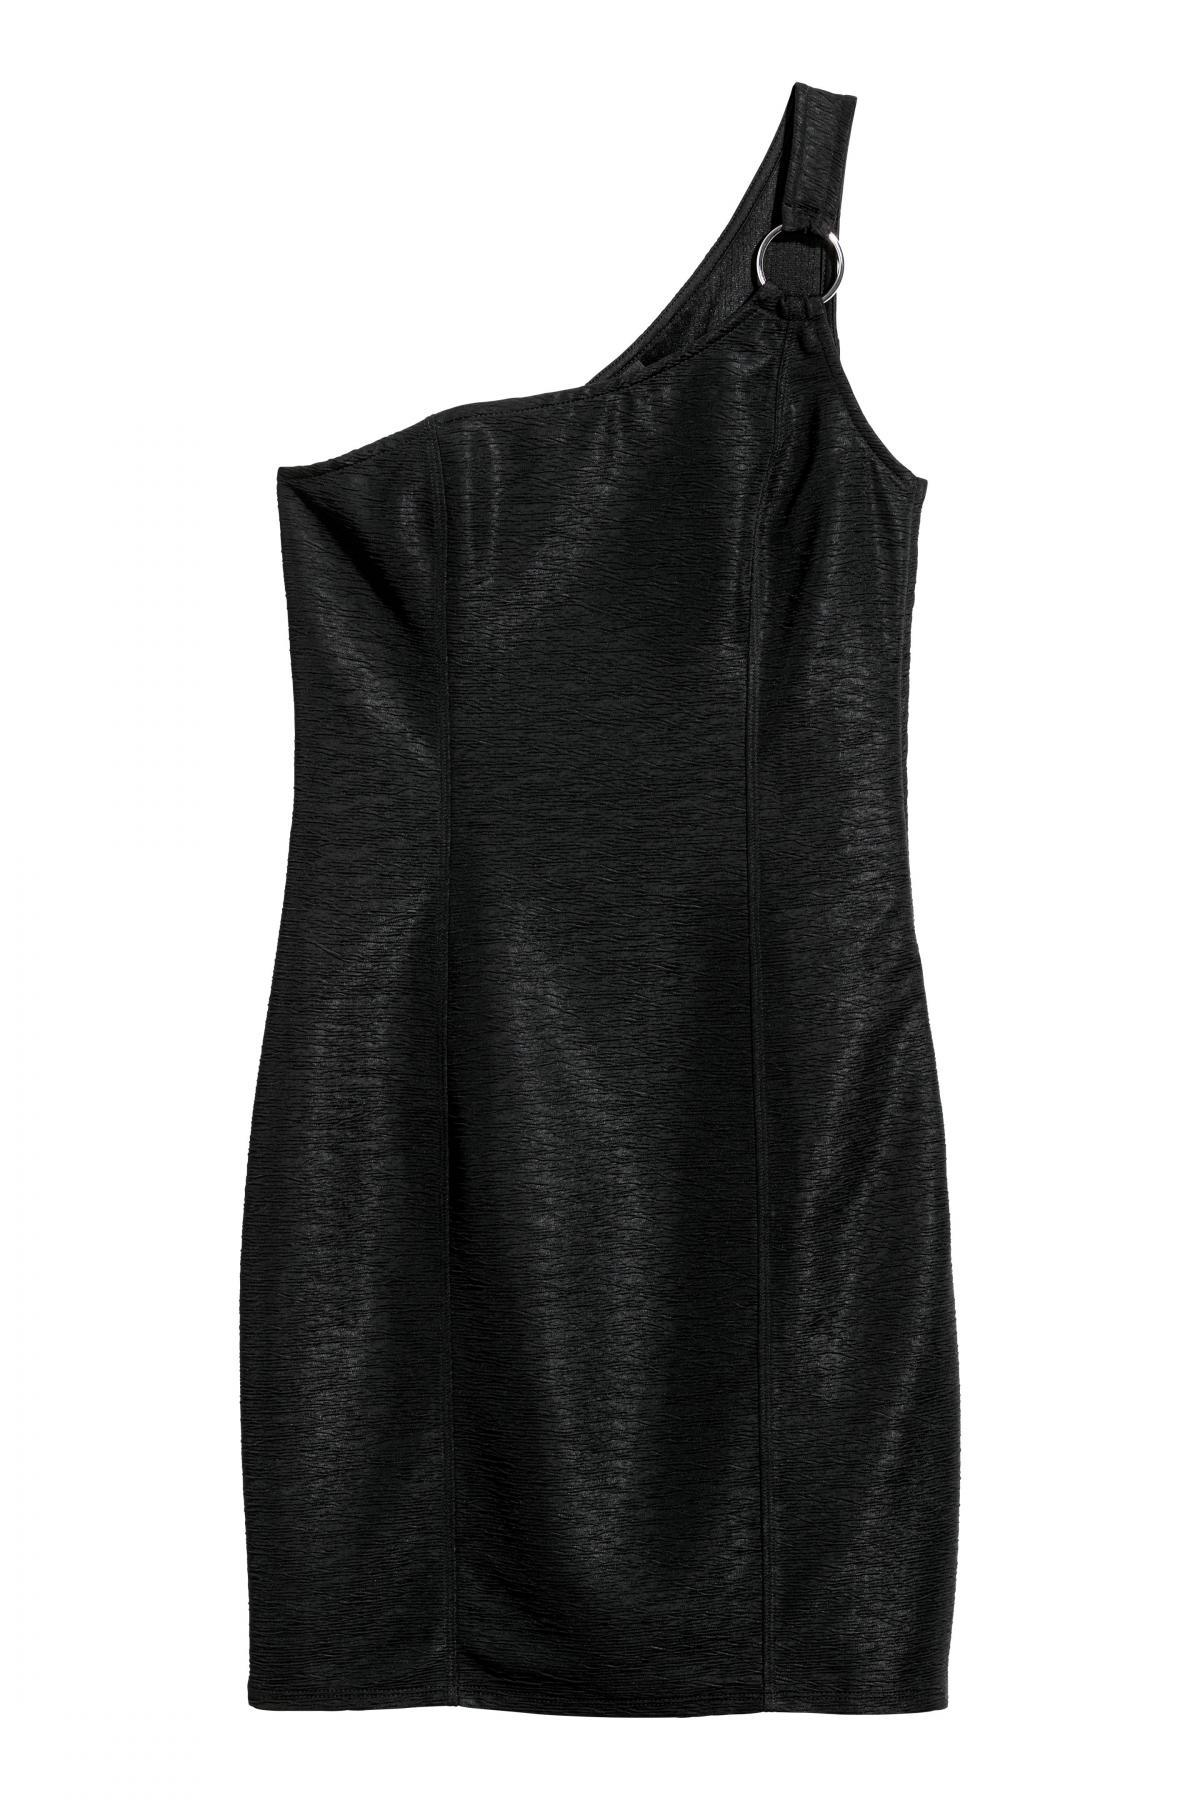 buy, dress, with, open, shoulder, h&m, women's, 0554892002, black, color, deliver price from 10.76 $